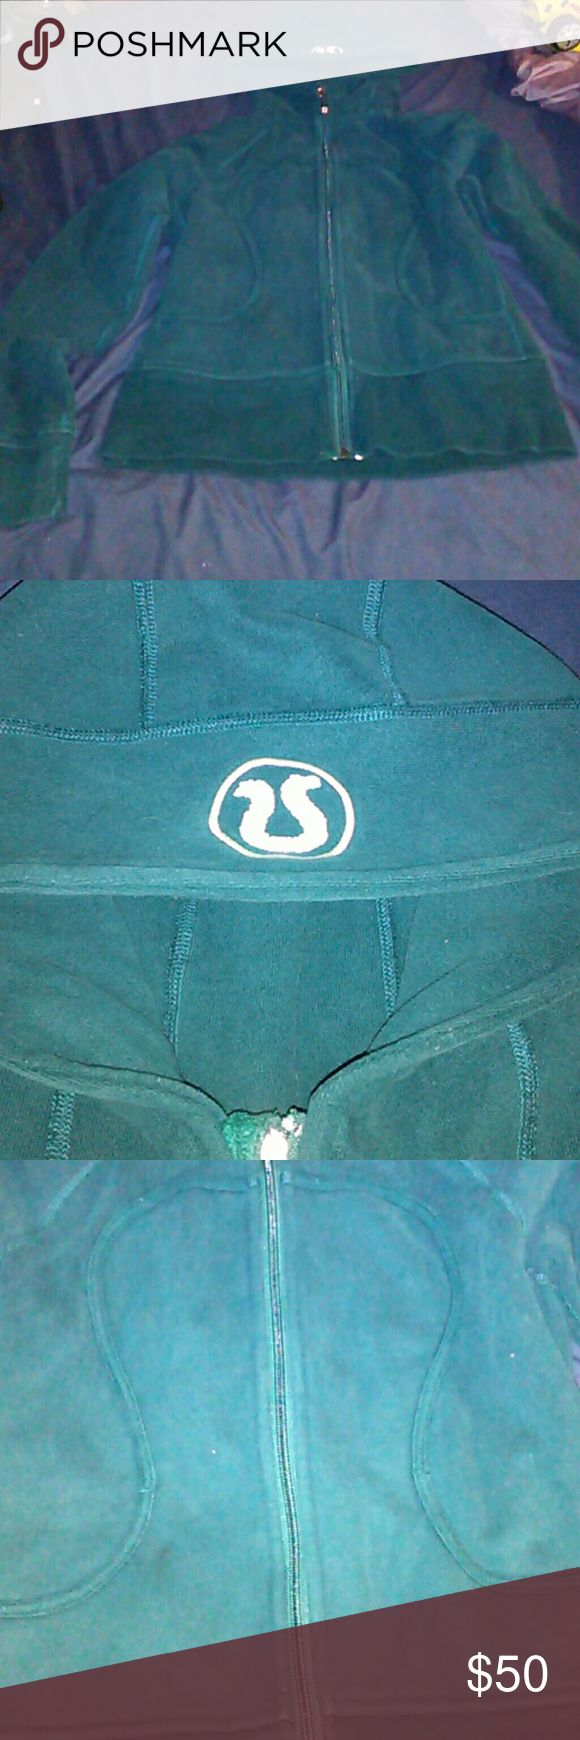 Lululemon athletica  dark green hoodie Very good condition, thick warm hoodie. The hood has a white lulu lemon design has pictured. lululemon athletica Jackets & Coats